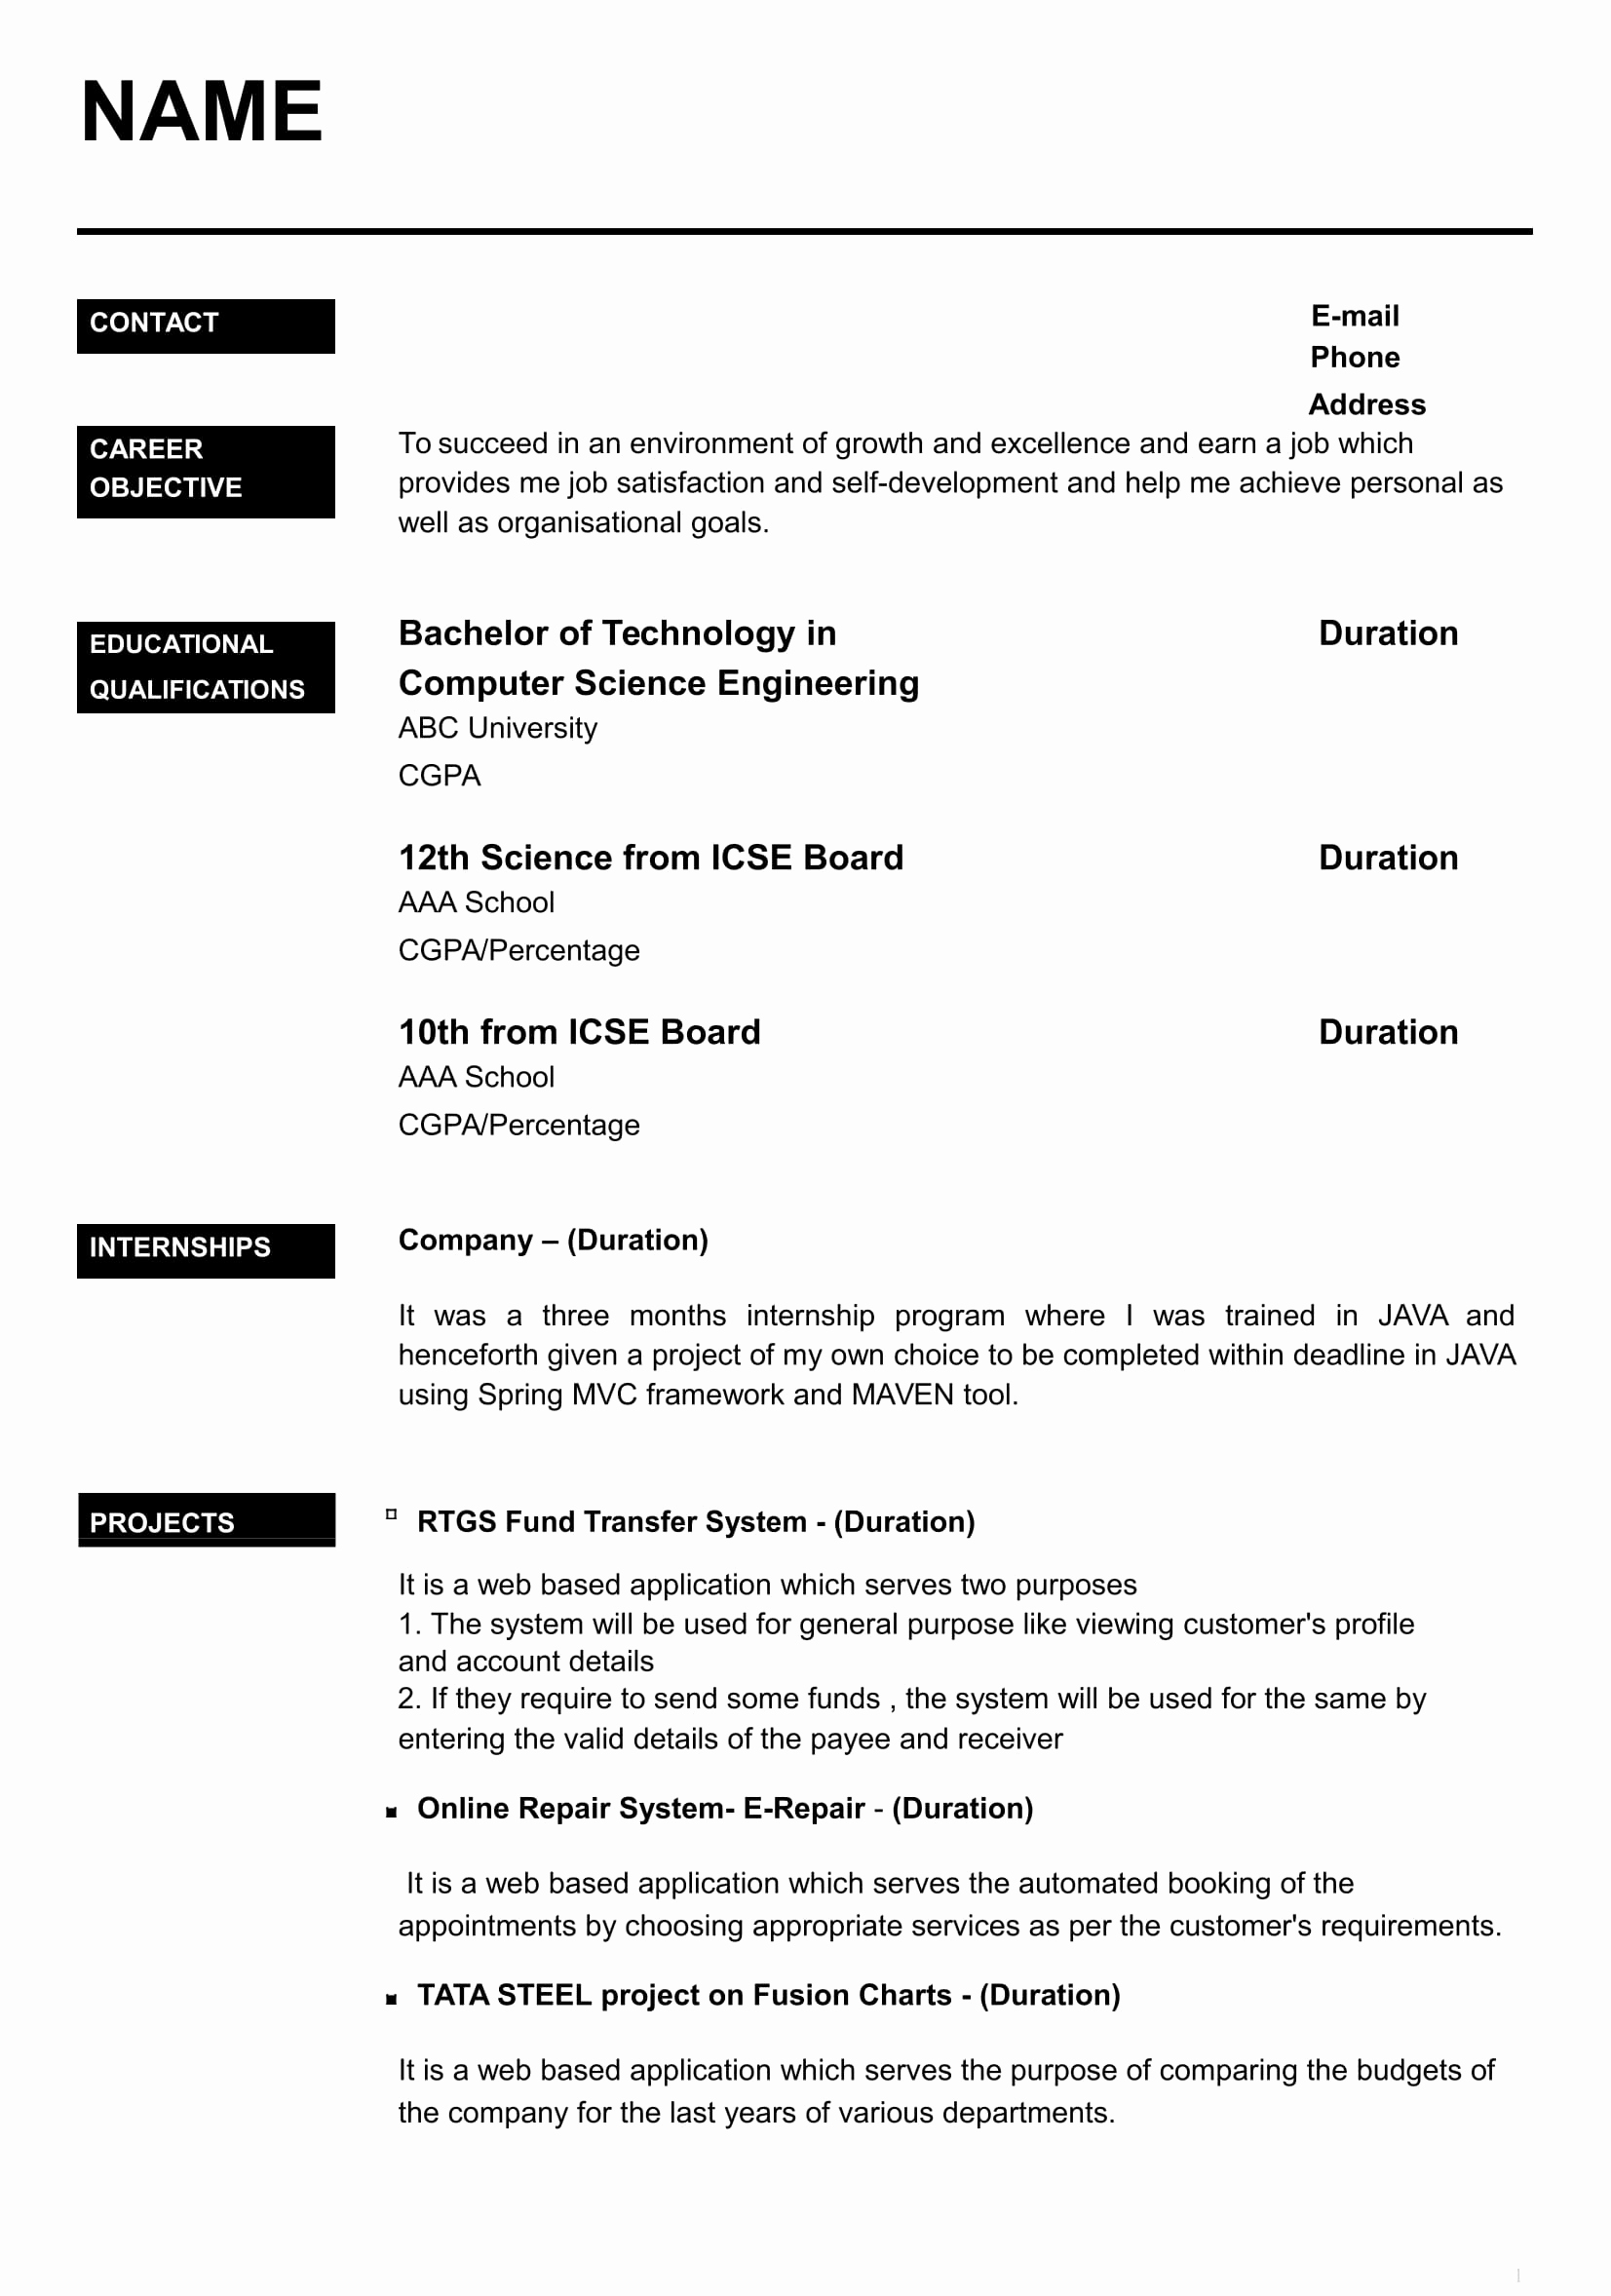 Resume with Picture Template Unique 32 Resume Templates for Freshers Download Free Word format